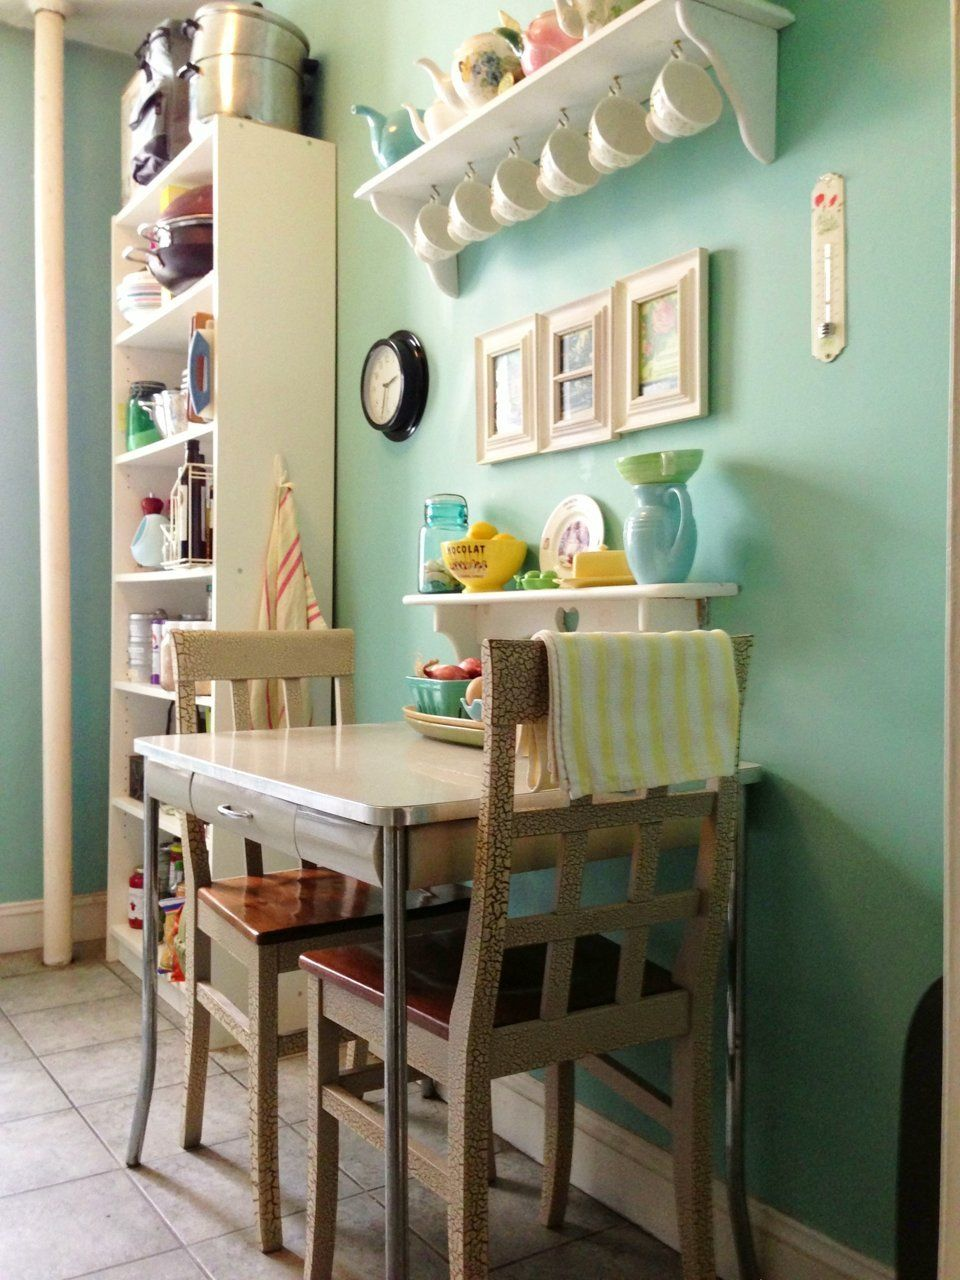 15 Small Space Kitchens, Tips, and Storage Solutions That ... on kitchen with oak cabinets design ideas, apartment kitchen colors, legacy kitchen design ideas, hotel kitchen design ideas, double wide kitchen design ideas, living room kitchen design ideas, apartment kitchen green, apartment kitchen plans, country farmhouse kitchen design ideas, modern dining design ideas, modular kitchen design ideas, hospital kitchen design ideas, apartment bathroom remodeling ideas, small kitchen design ideas, trailer kitchen design ideas, kitchen table centerpiece ideas, apartment kitchen decorations, apartment kitchen construction, apartment maintenance ideas, mansion kitchen design ideas,